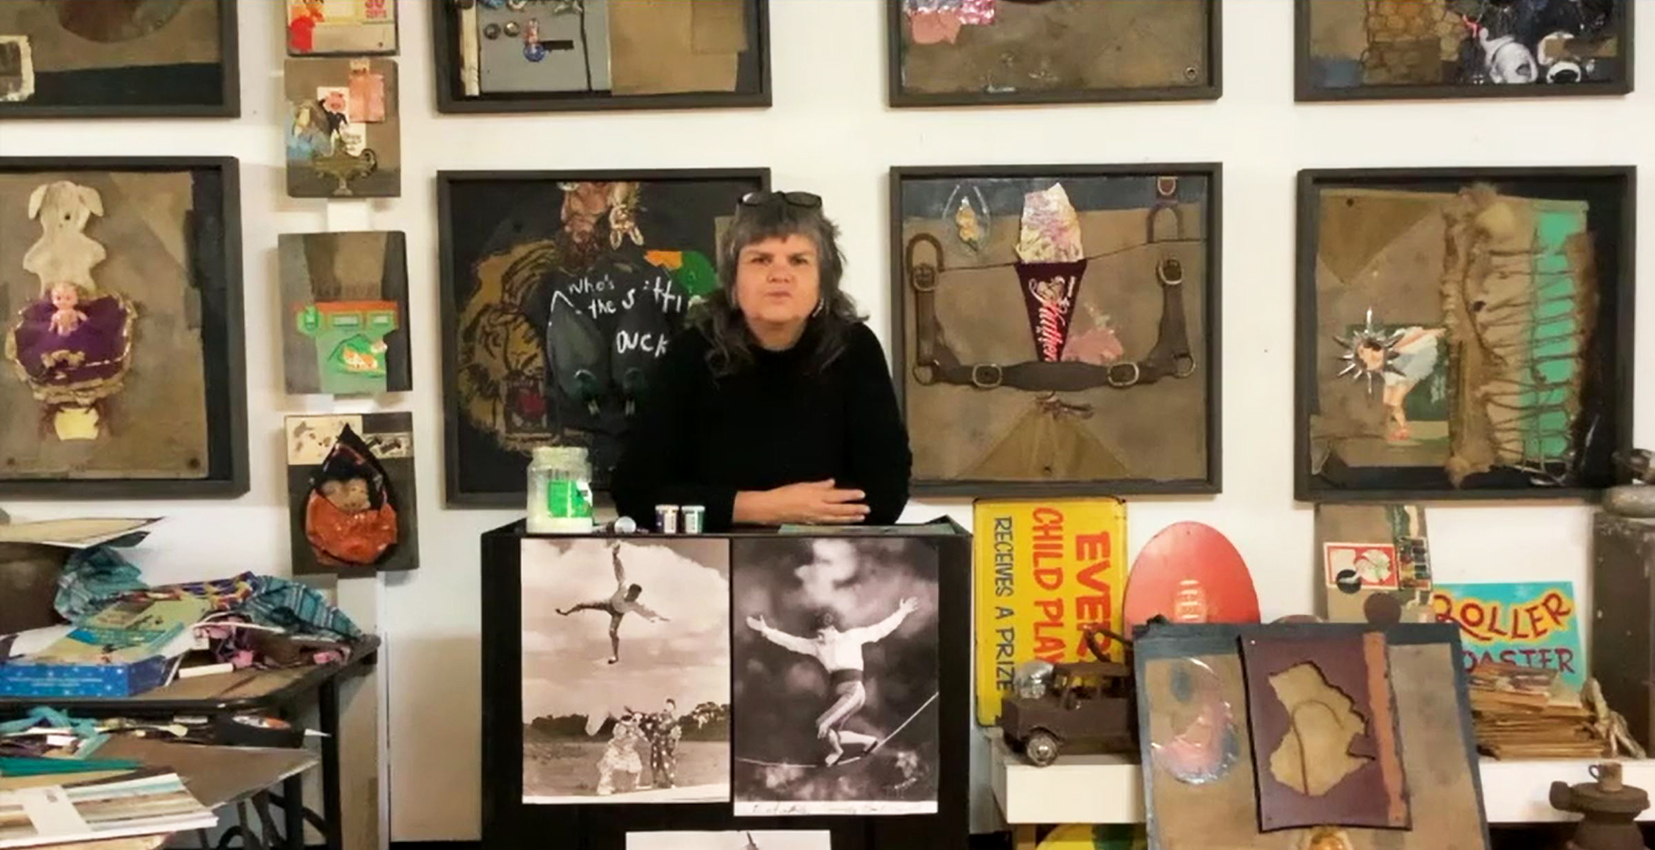 Karla Dickens in her studio, surrounded by her artworks